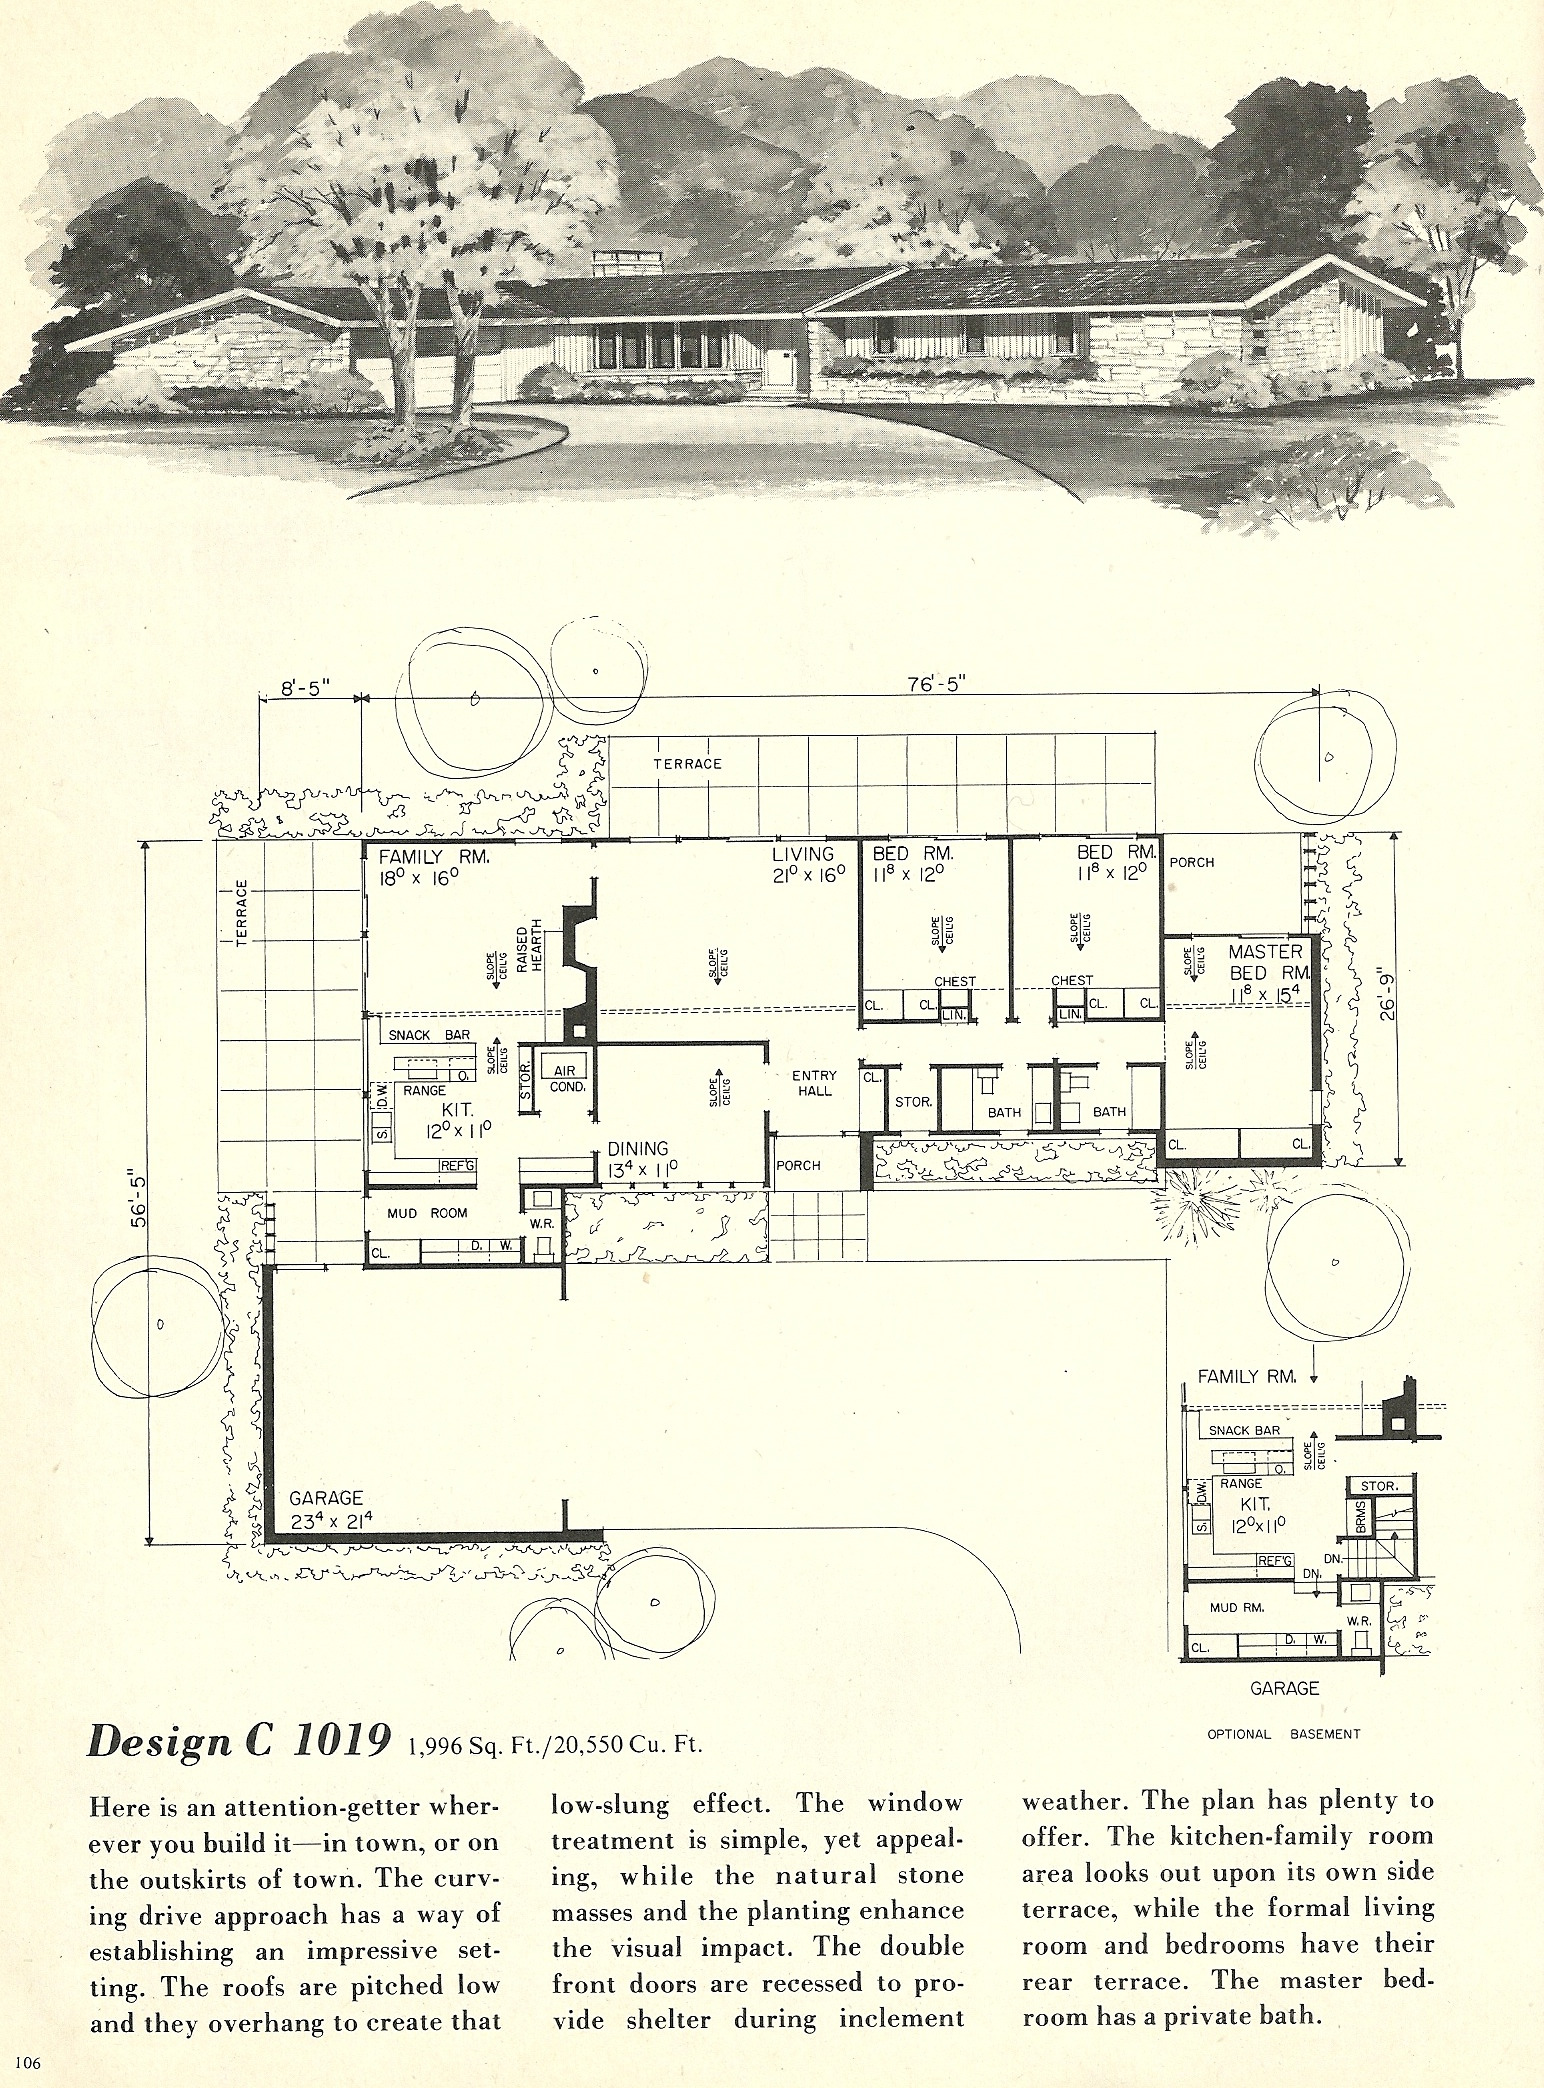 Vintage house plans 1019 antique alter ego for 1960 s home plans